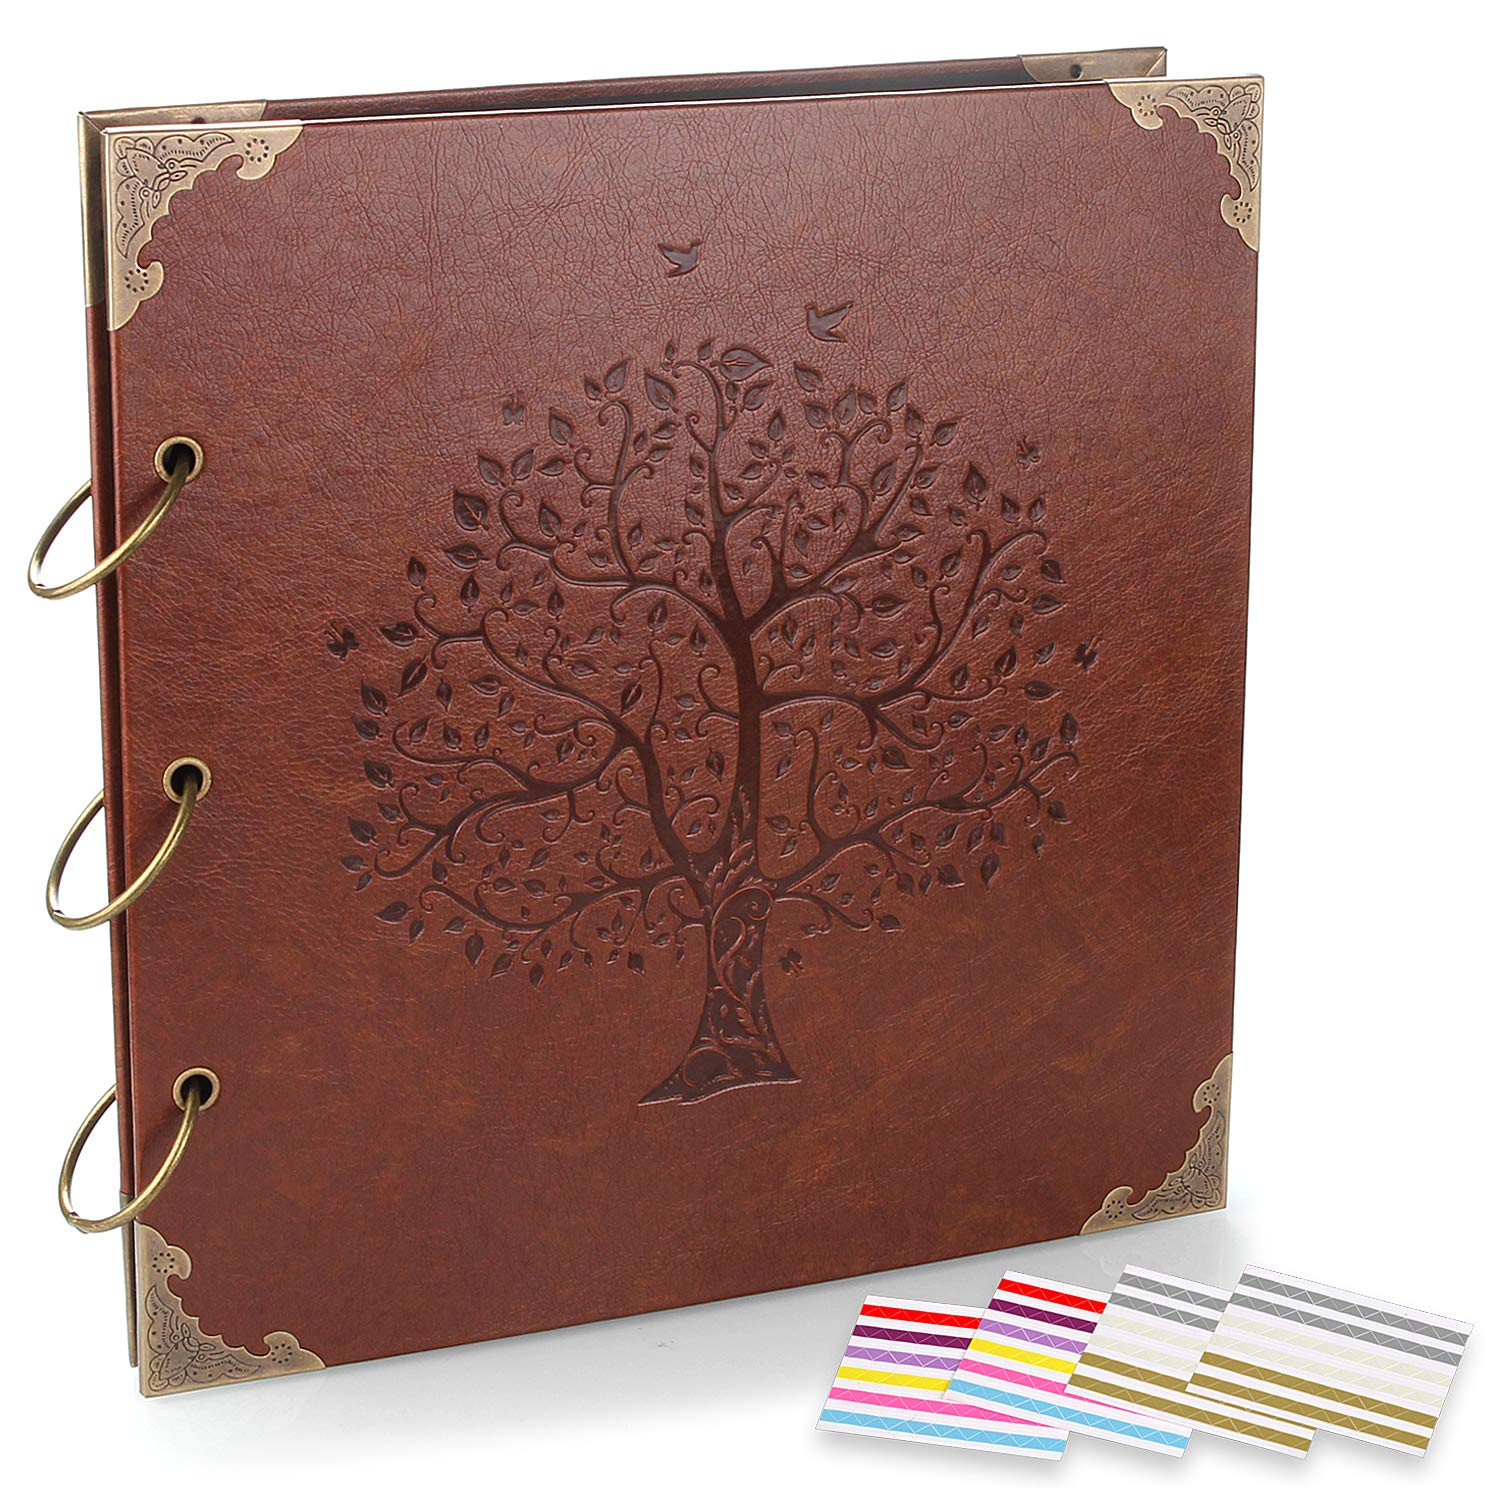 ADVcer Photo Album DIY Scrapbook (10x10 inch 50 Pages Double Sided), Vintage Leather Cover Three-Ring Binder Family Picture Booth with 9 Color 408pcs Self Adhesive Photos Corners for Memory Keep, Tree by ADVcer